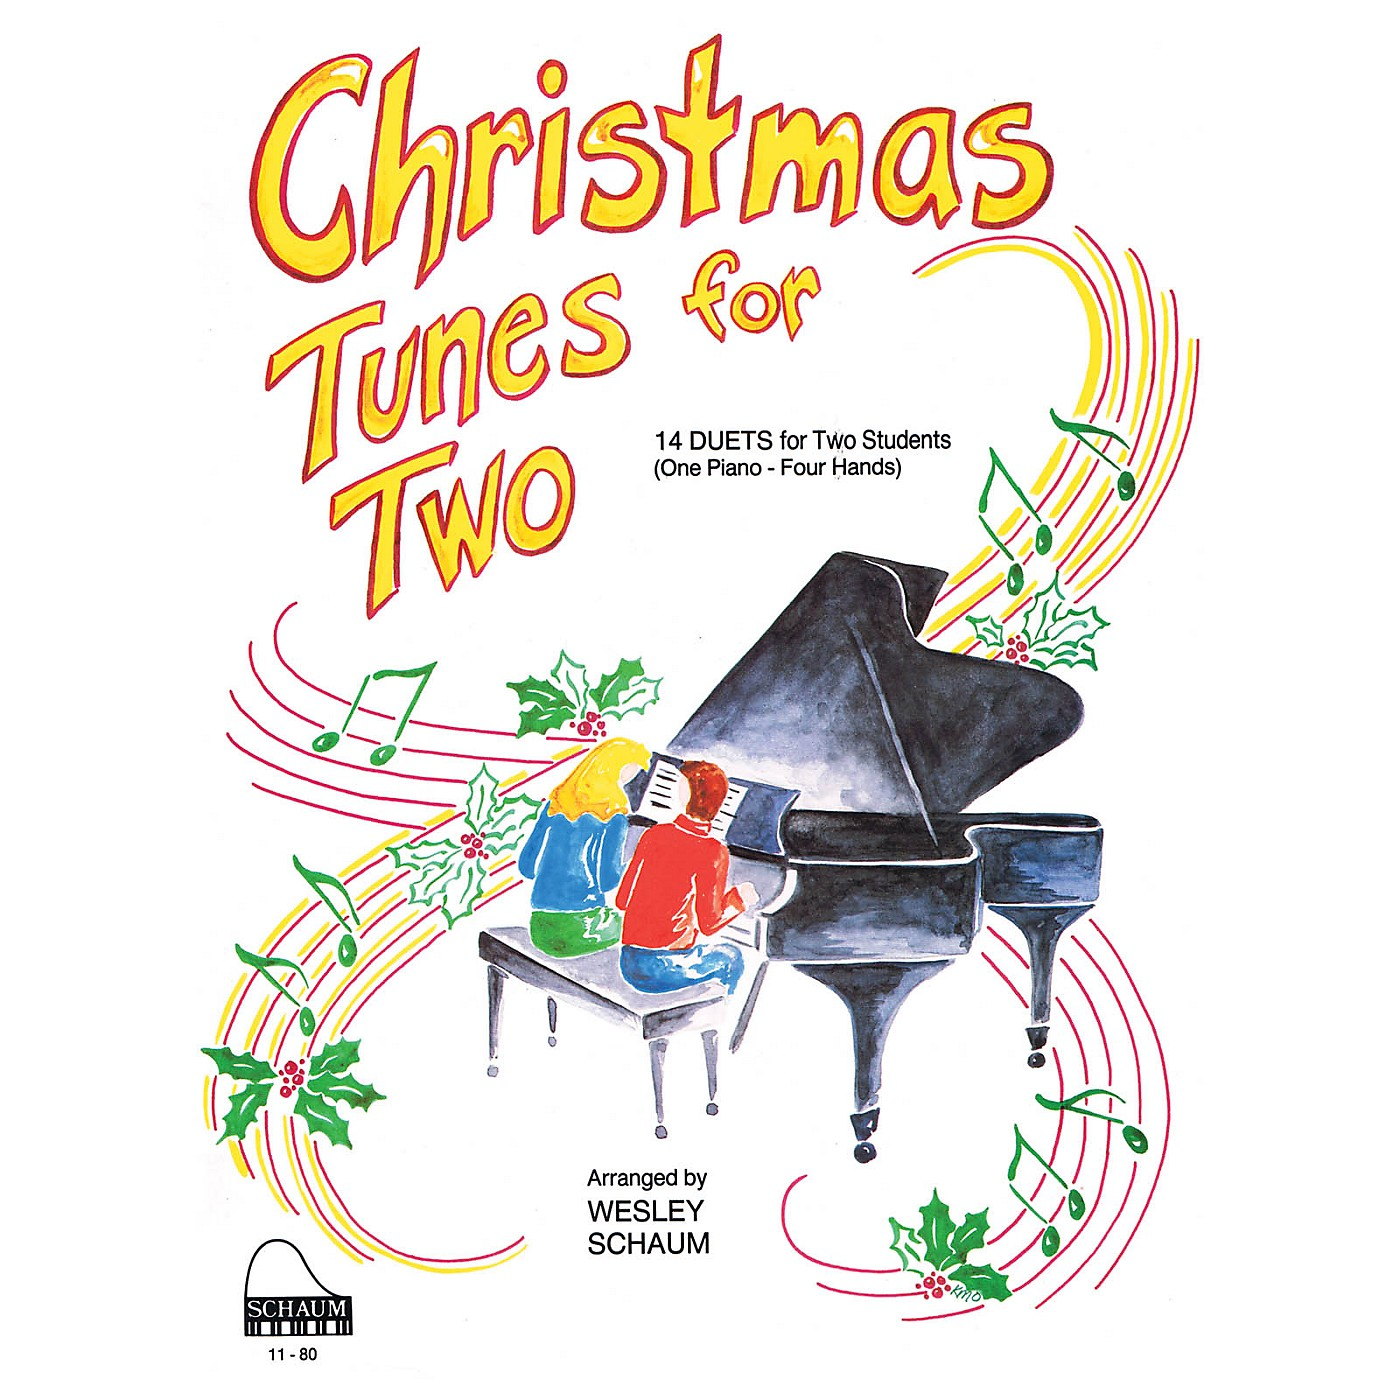 SCHAUM Christmas Tunes for Two (1 Piano, 4 Hands Level 3 Early Inter) Educational Piano Book thumbnail